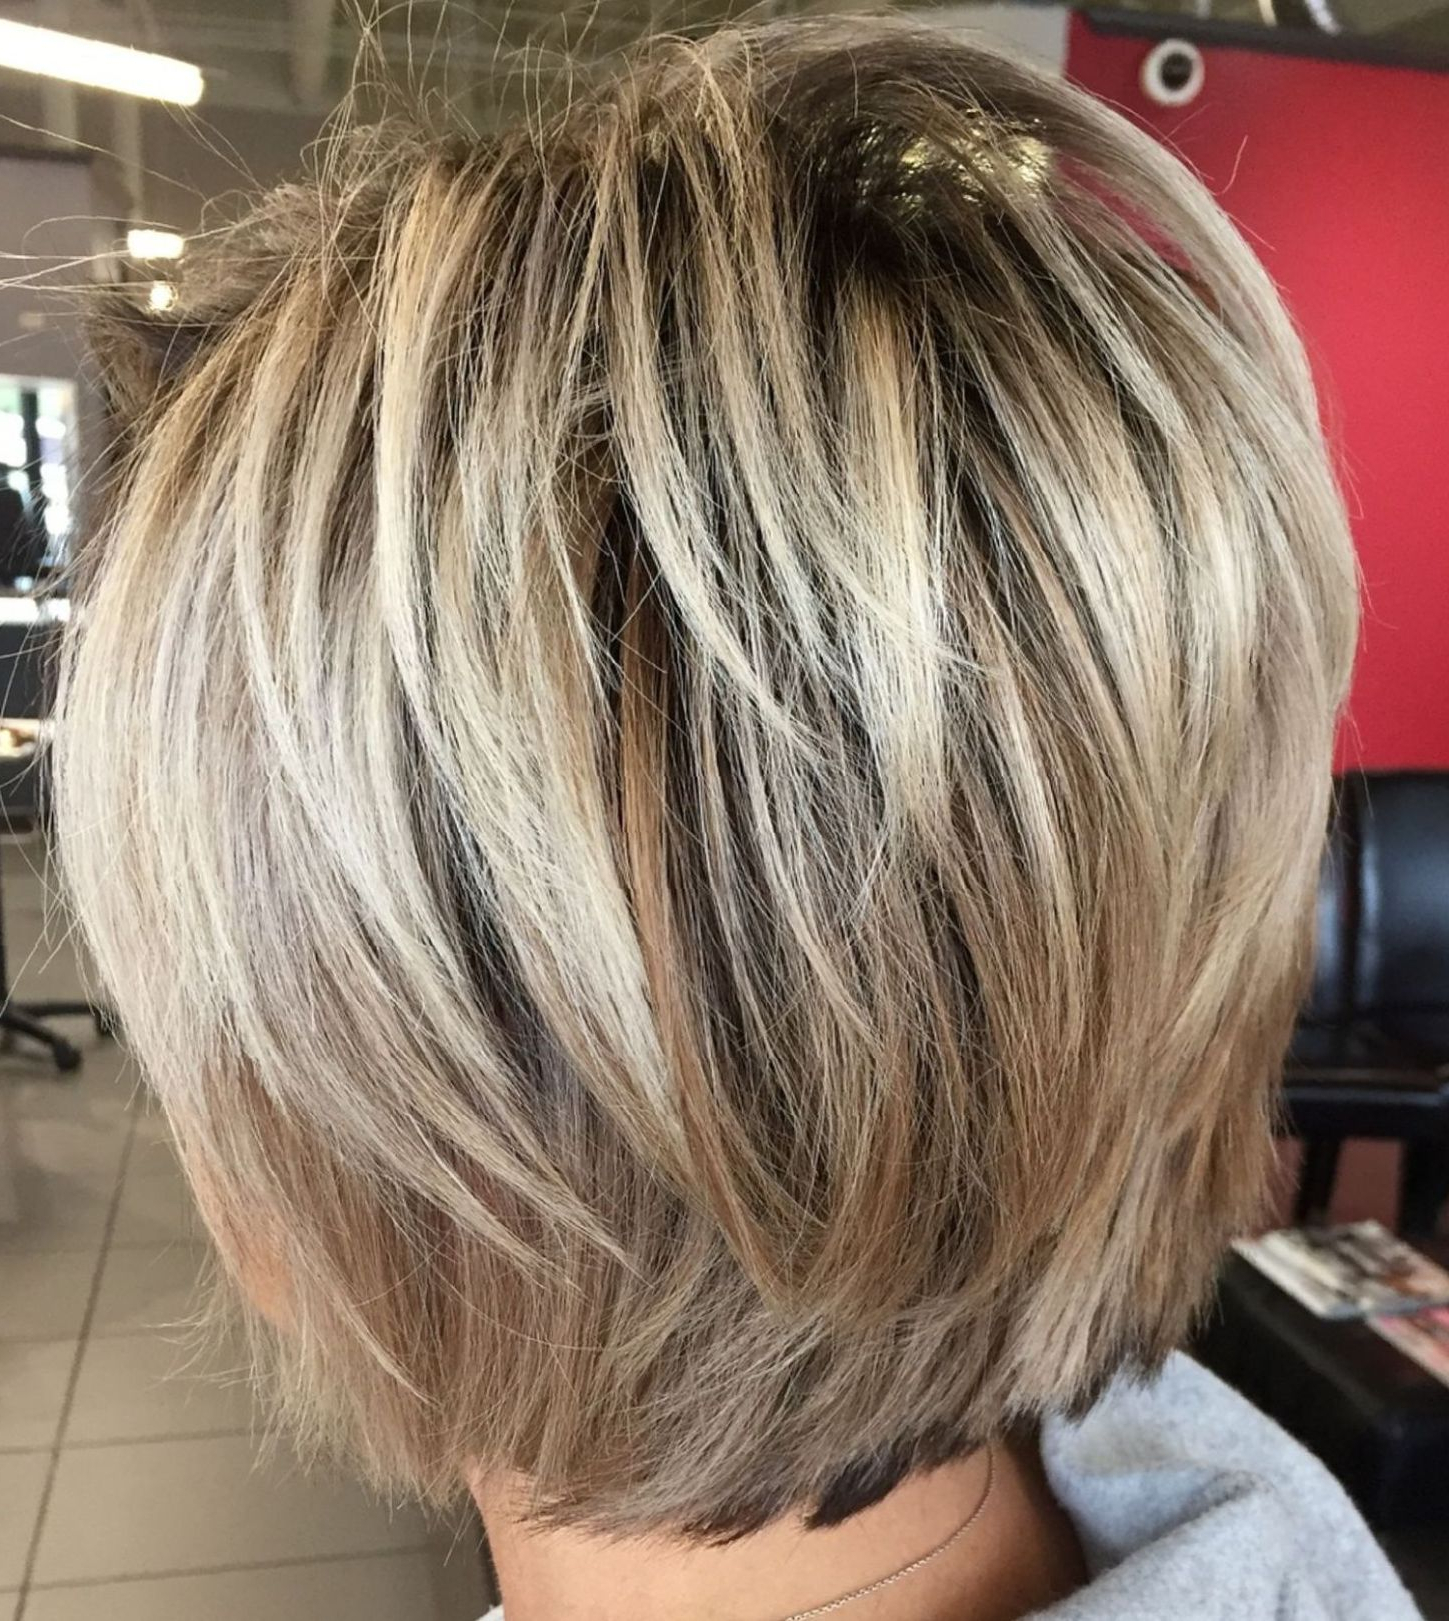 Pin On Hair Styles And Hair Color In Short Shag Bob Haircuts (View 4 of 20)